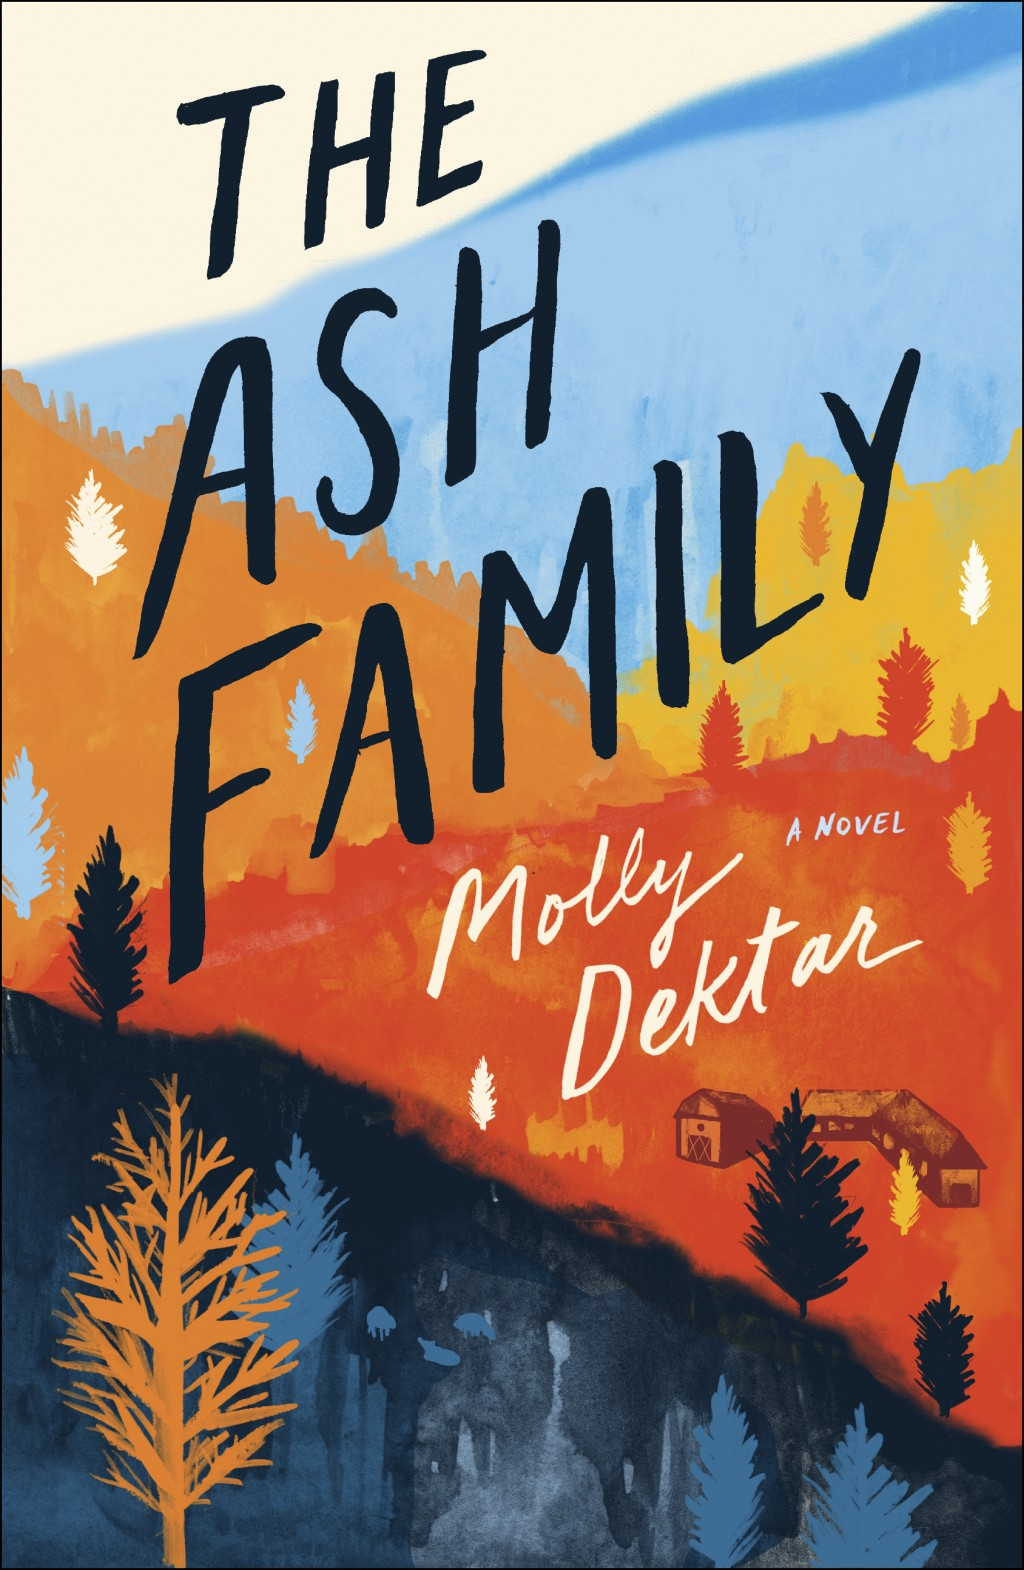 """This cover image released by Simon & Schuster shows """"The Ash Family,"""" a novel by Molly Dektar. (Simon & Schuster via AP)"""